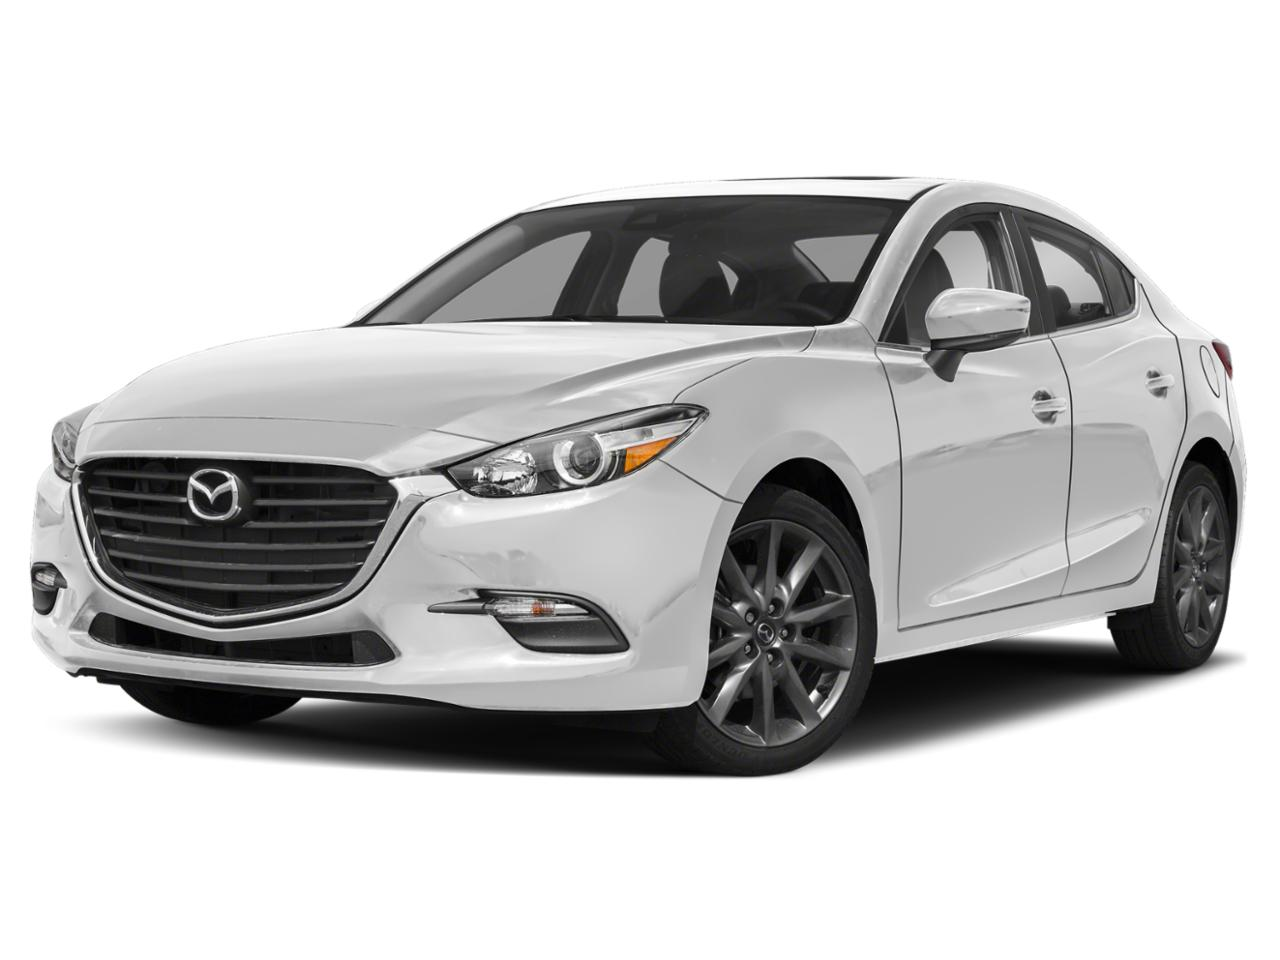 2018 Mazda Mazda3 4-Door Vehicle Photo in Brownsville, TX 78520